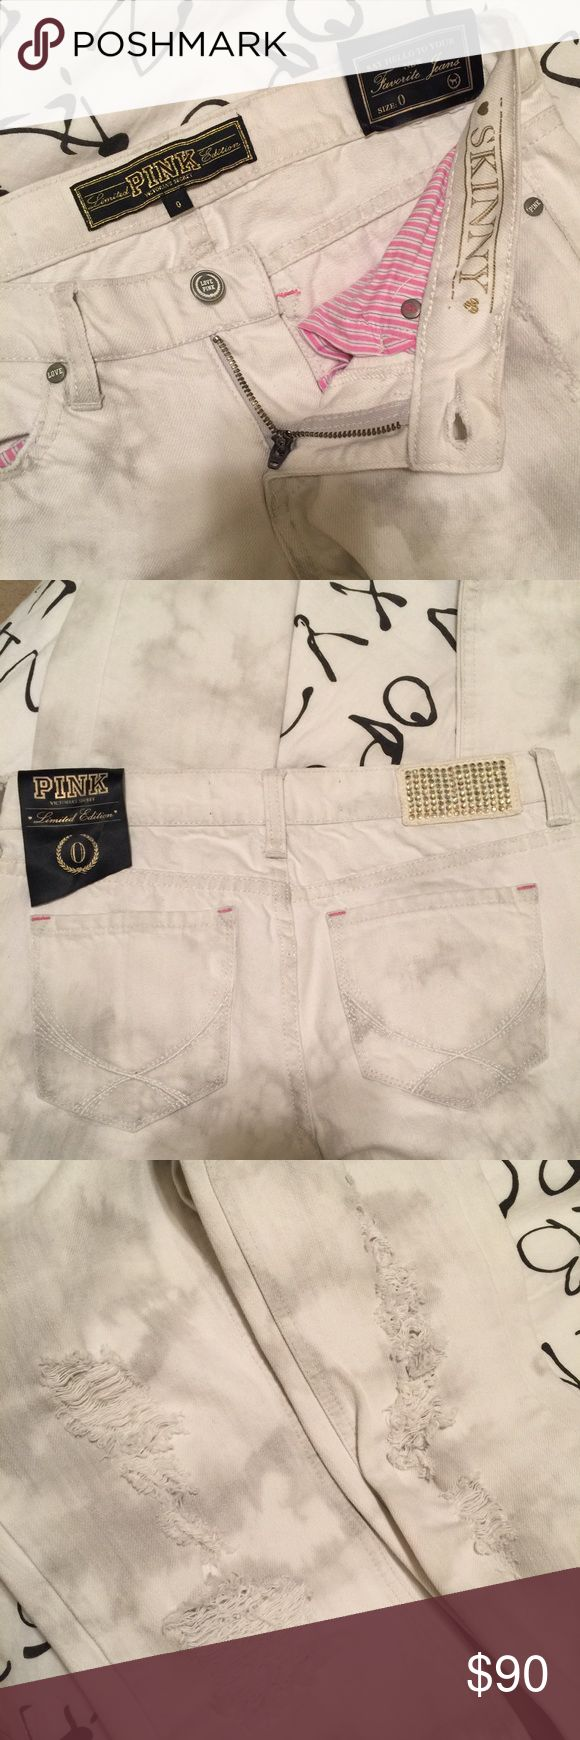 """Victoria's Secret PRELOVED limited edition, collector's, limited release distressed white denim skinny jeans with splatters all over, exclusively from Victoria's Secret PINK. The tag is on the waist band on back (there is NO price tag because they were purchased through catalogue/online). They are a skinny fit but not super tight (more relaxed in the calf). They have destructed details and rhinestones on the back. They are sexy and stylish. Size 0 inseam approx 31"""" Victoria's Secret Jeans…"""